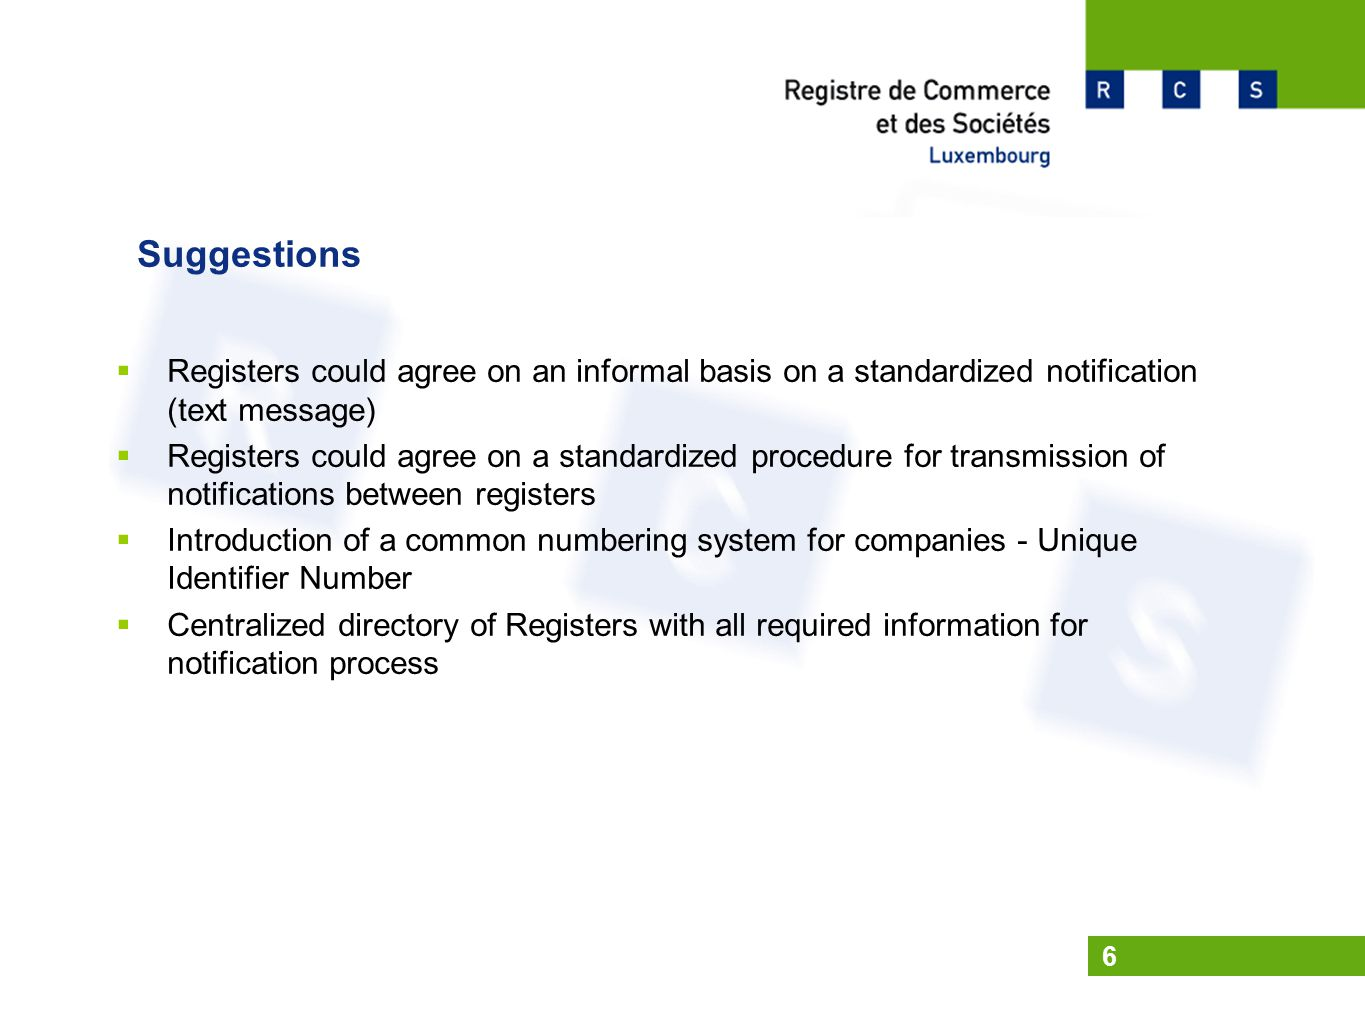 6 Suggestions  Registers could agree on an informal basis on a standardized notification (text message)  Registers could agree on a standardized procedure for transmission of notifications between registers  Introduction of a common numbering system for companies - Unique Identifier Number  Centralized directory of Registers with all required information for notification process